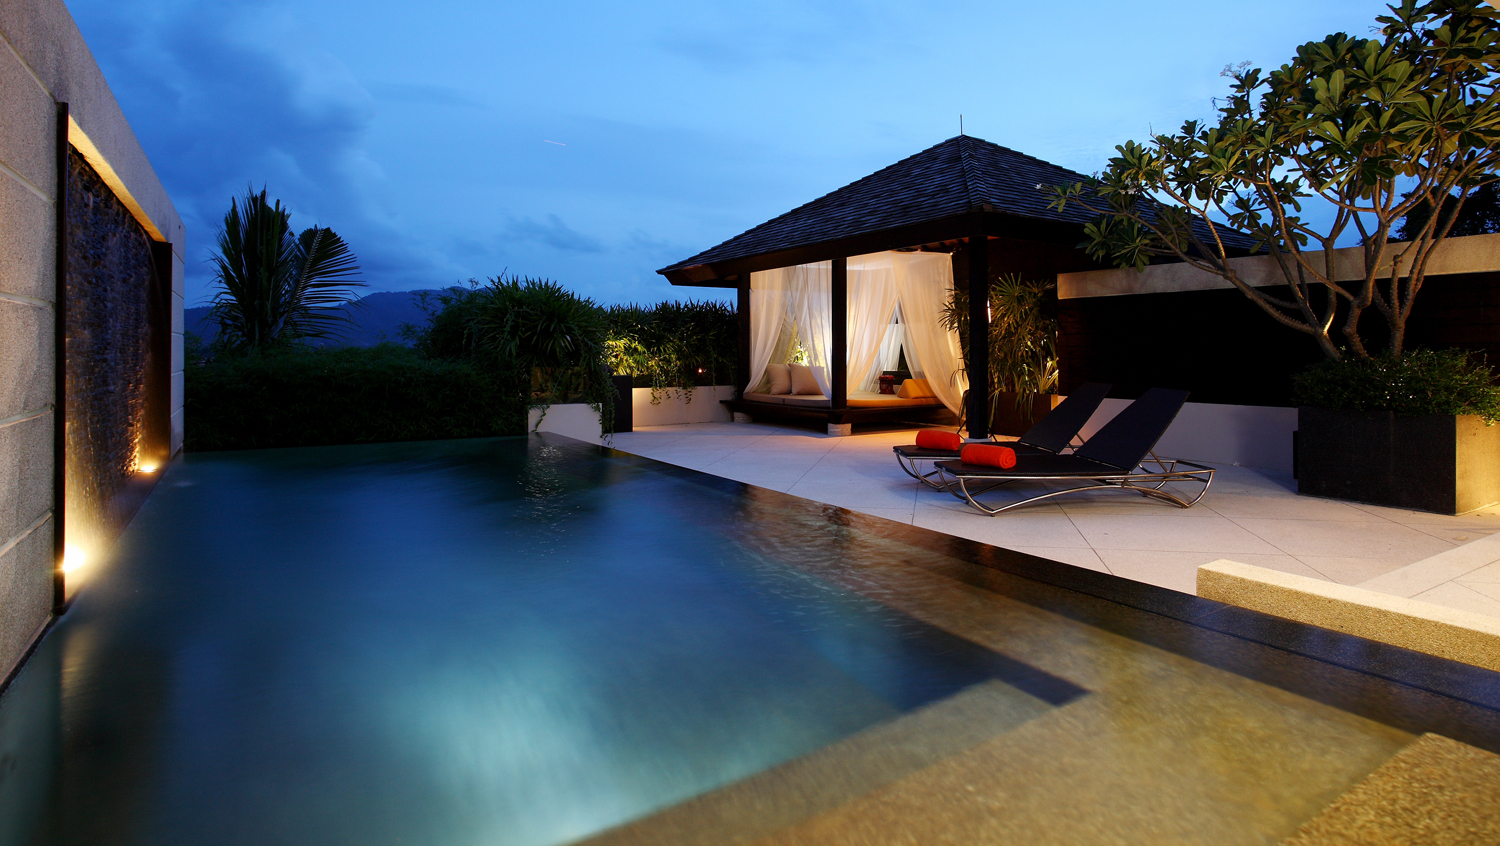 The Pavilion Phuket Tropical Pool Villa